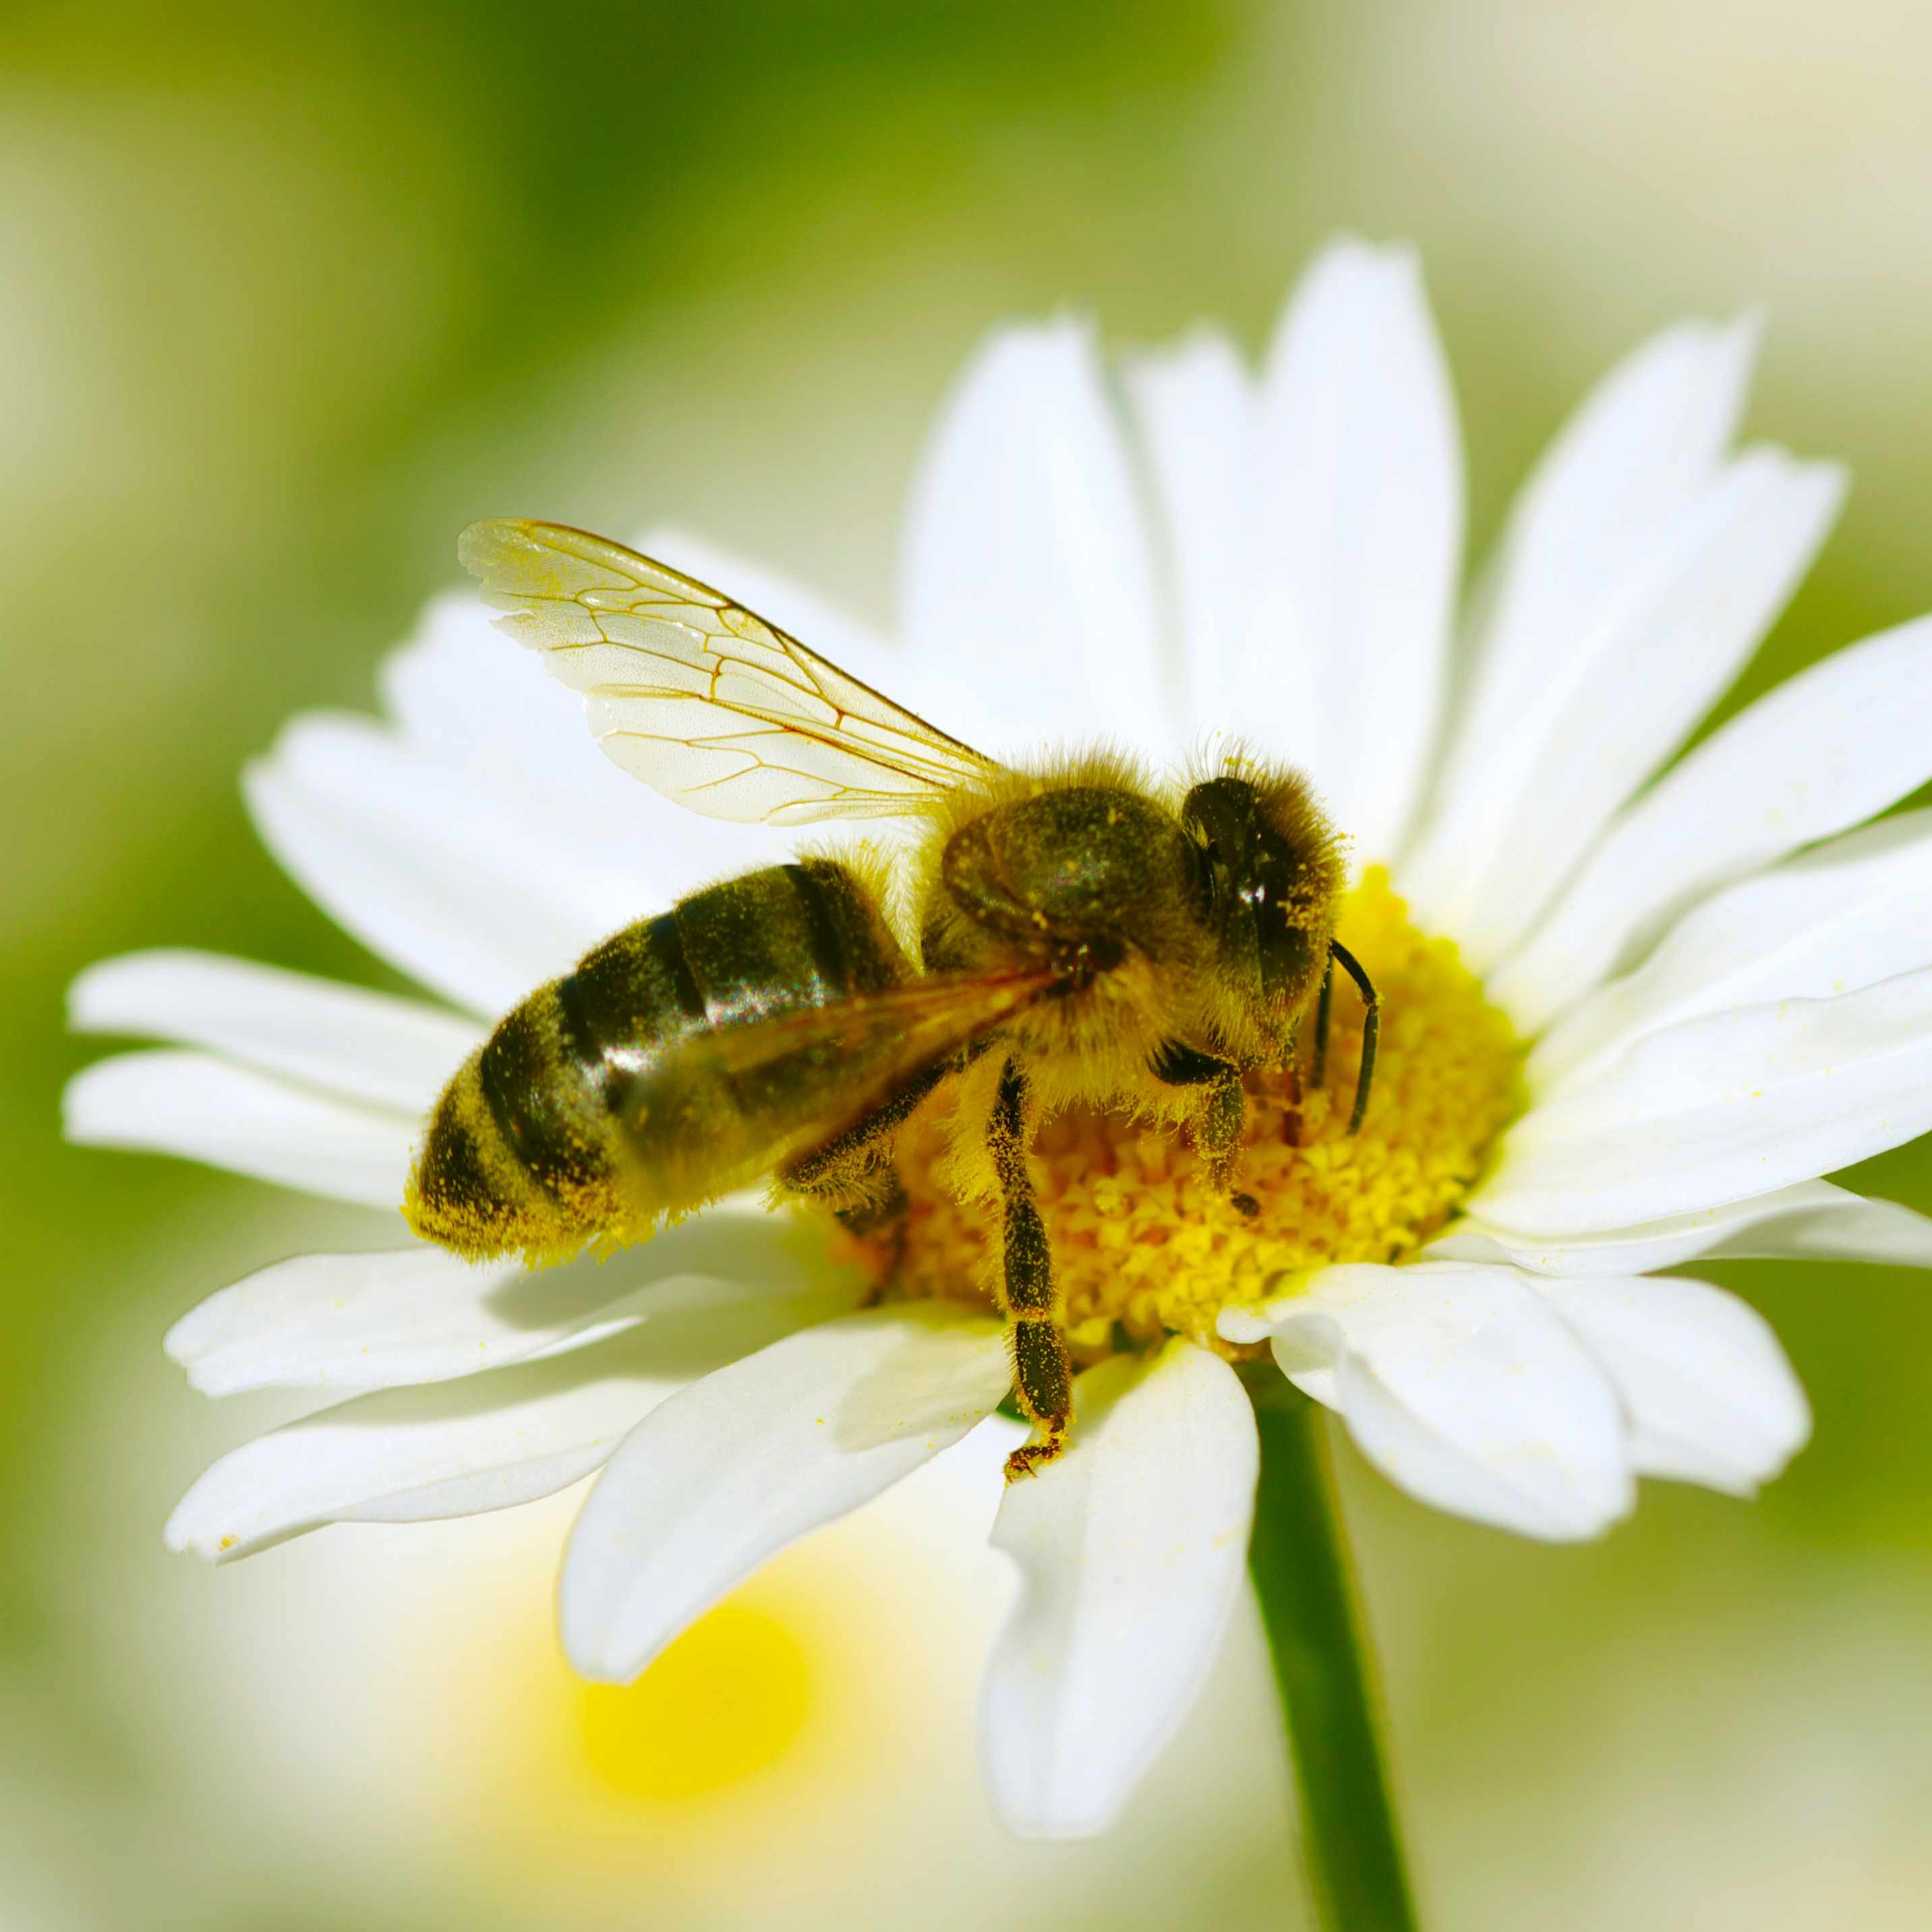 a daisy with a bee pollinating the flower